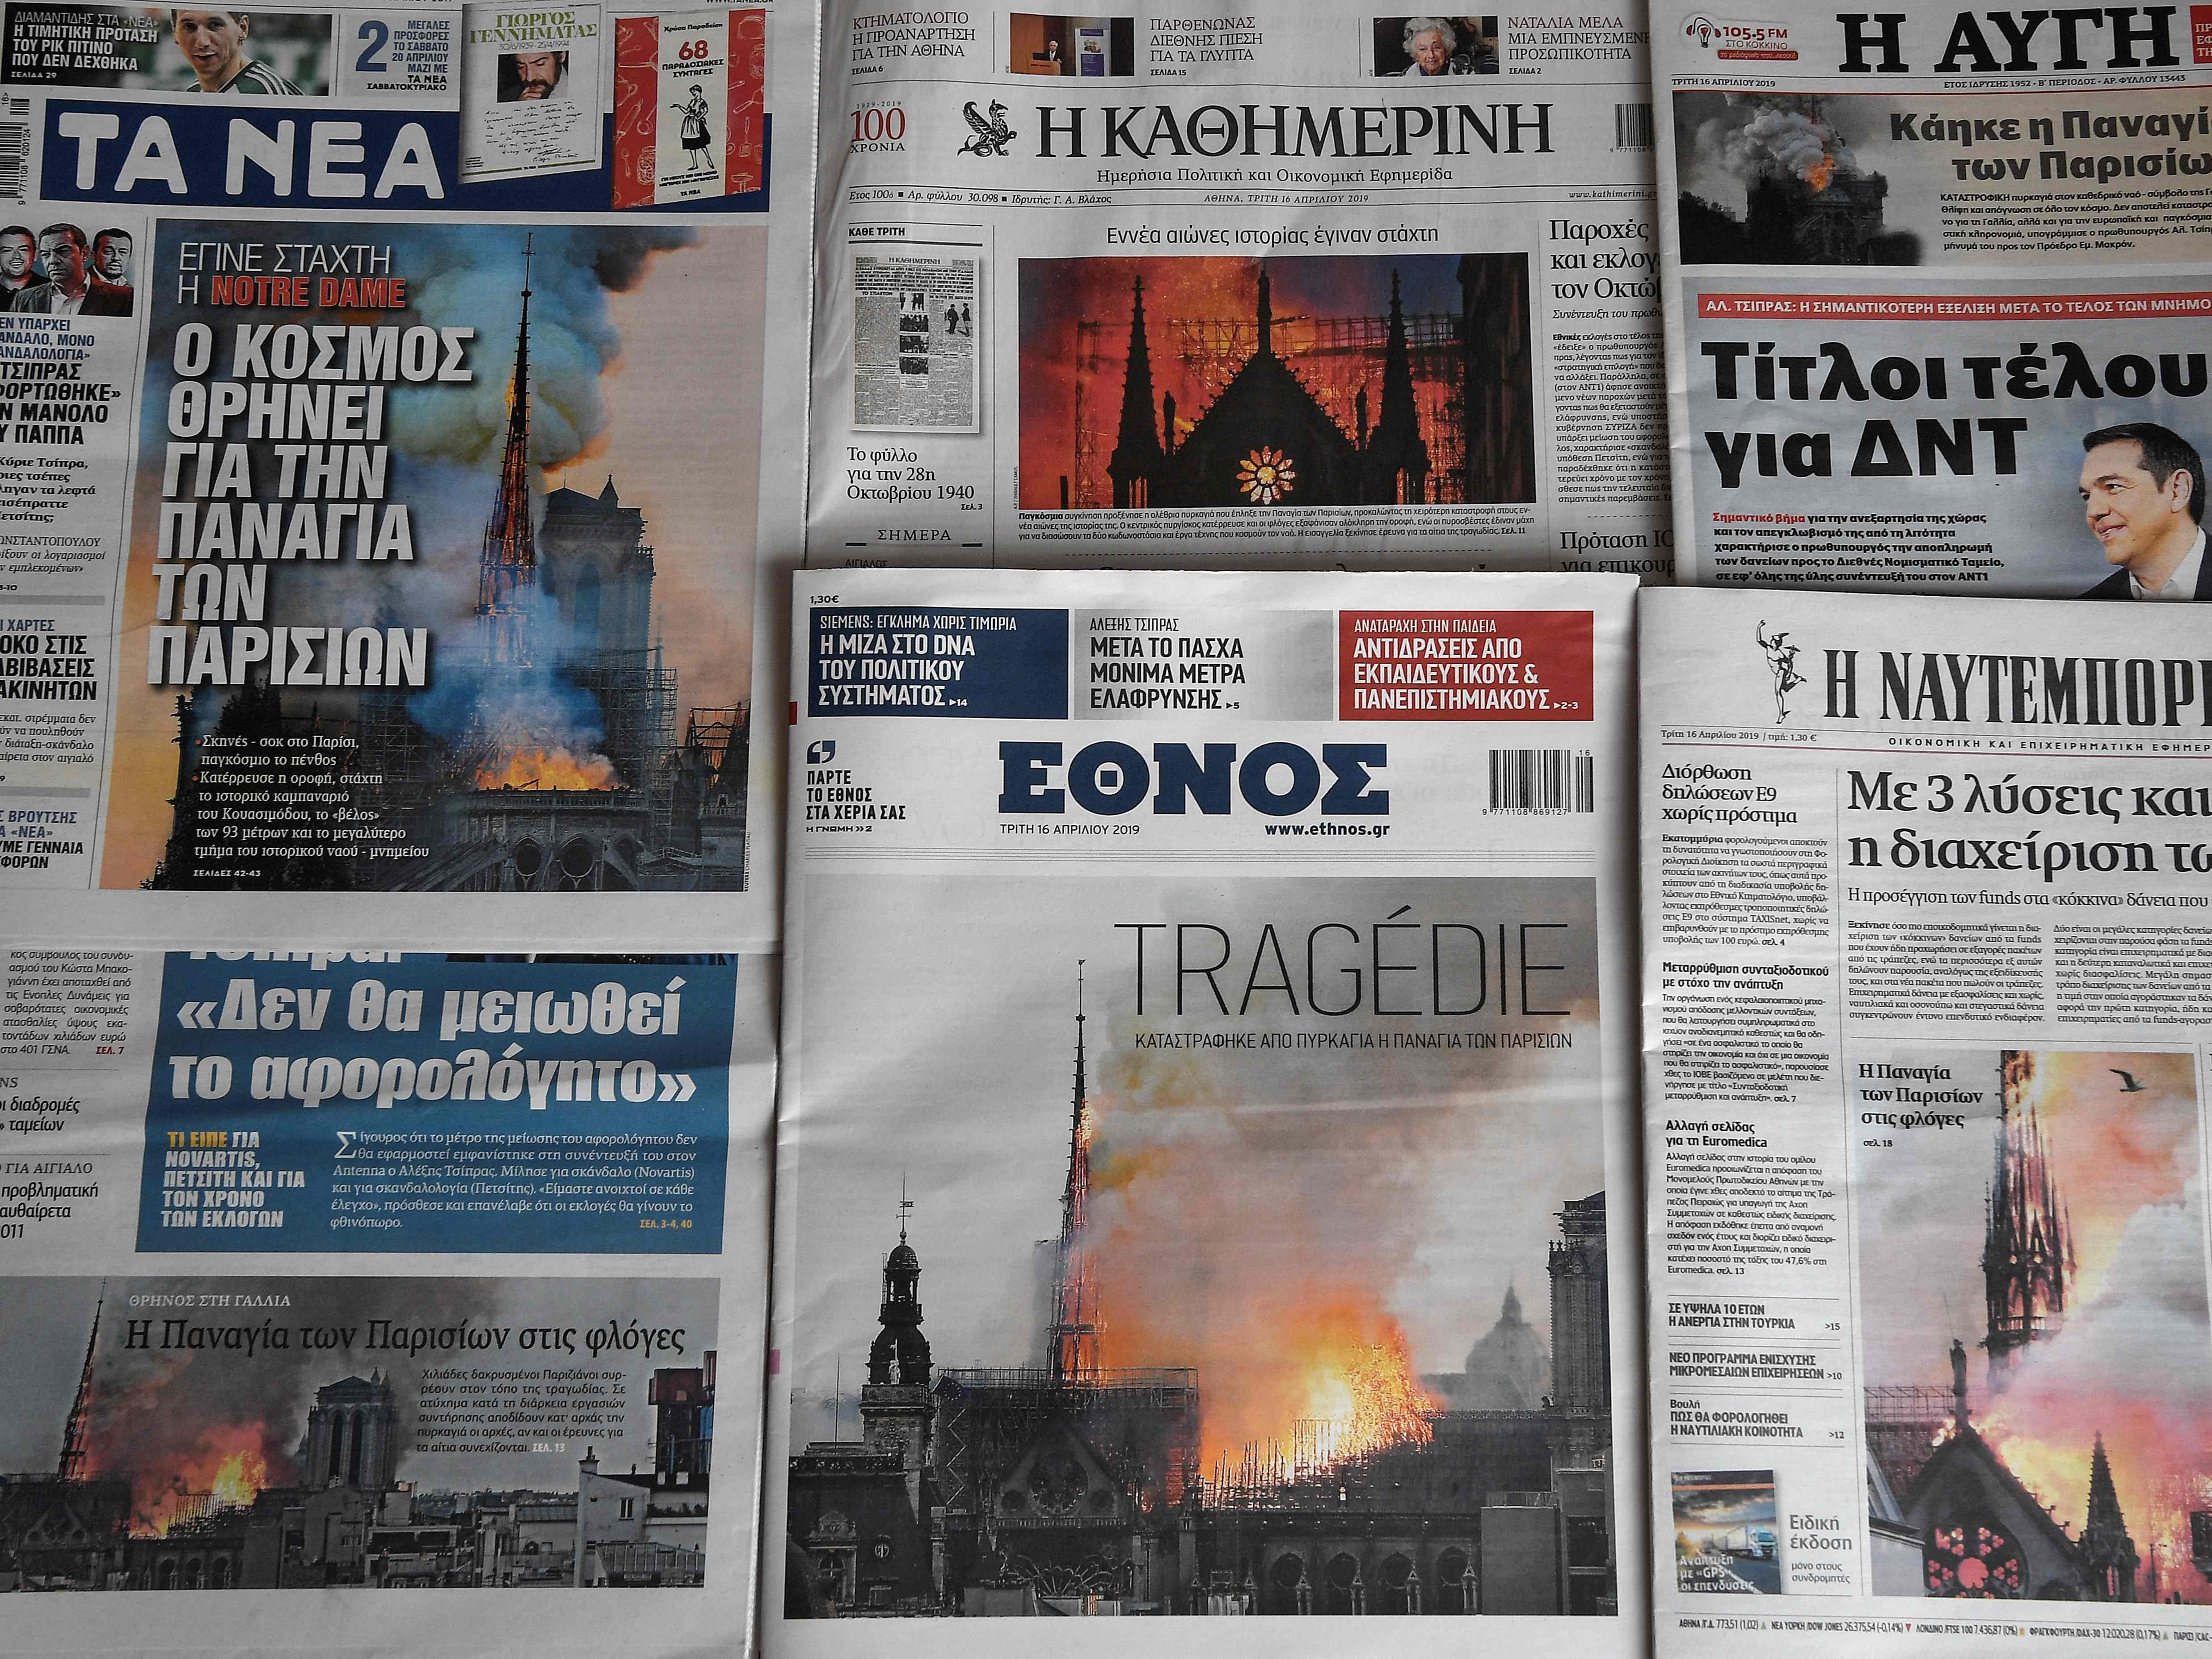 Greek newspapers with images of the landmark Notre Dame Cathedral in Paris in flames are pictured in Athens on April 16, 2019, the day after a fire ripped through its roof.